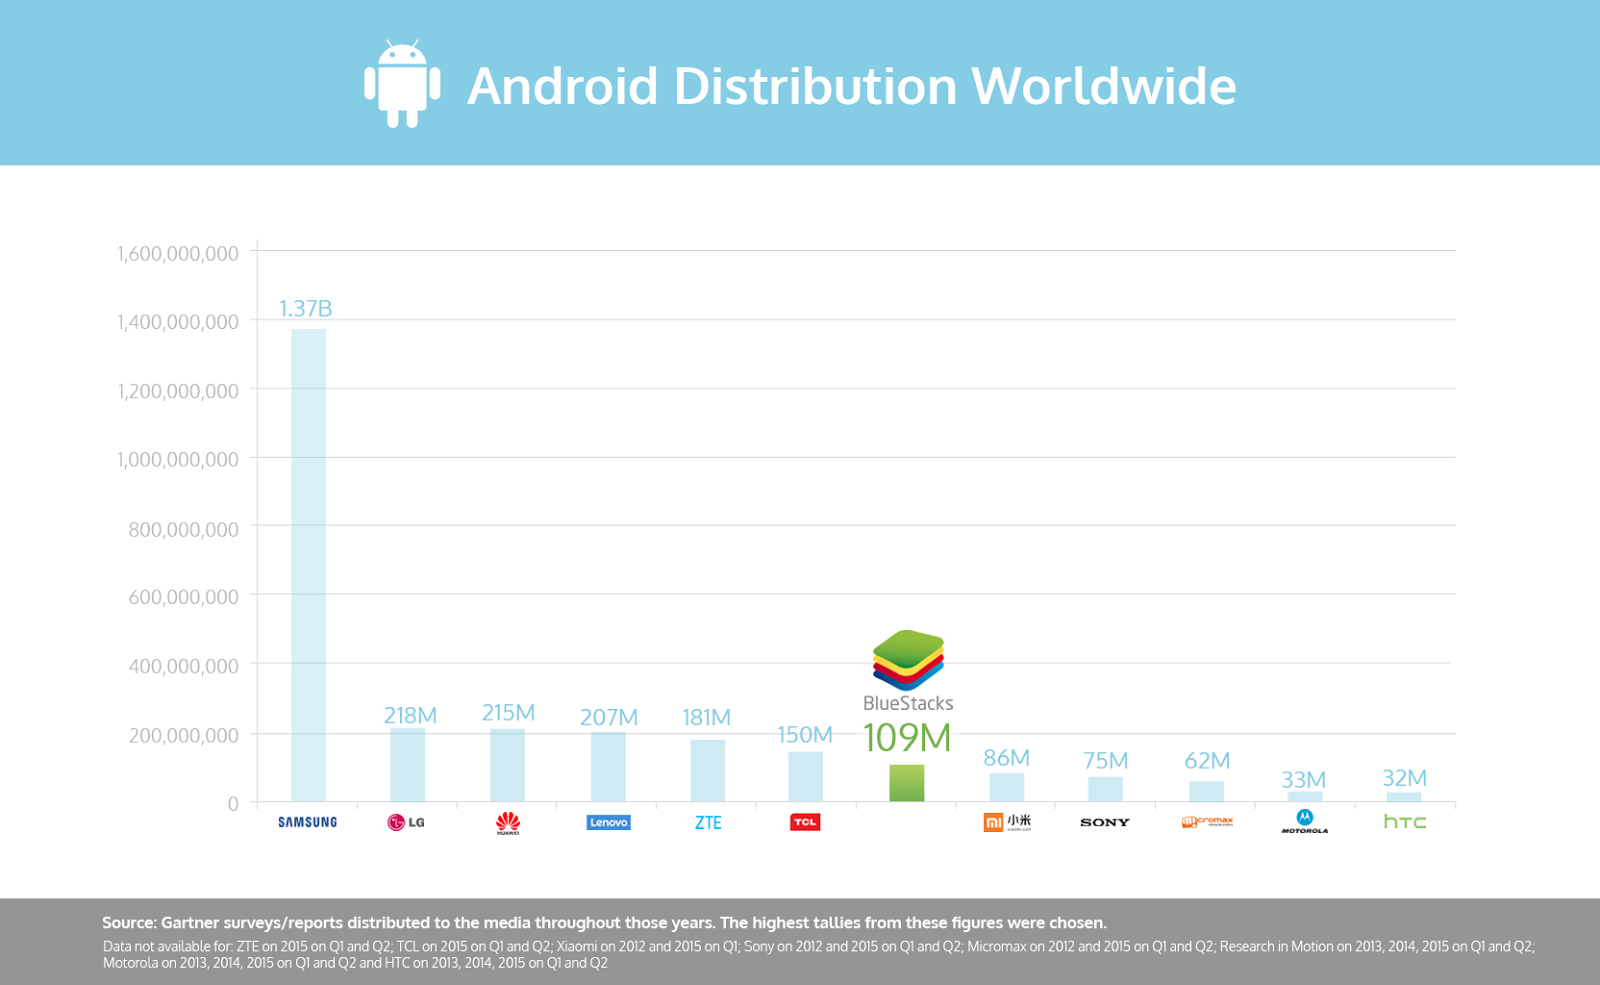 Top Android Footprint Worldwide